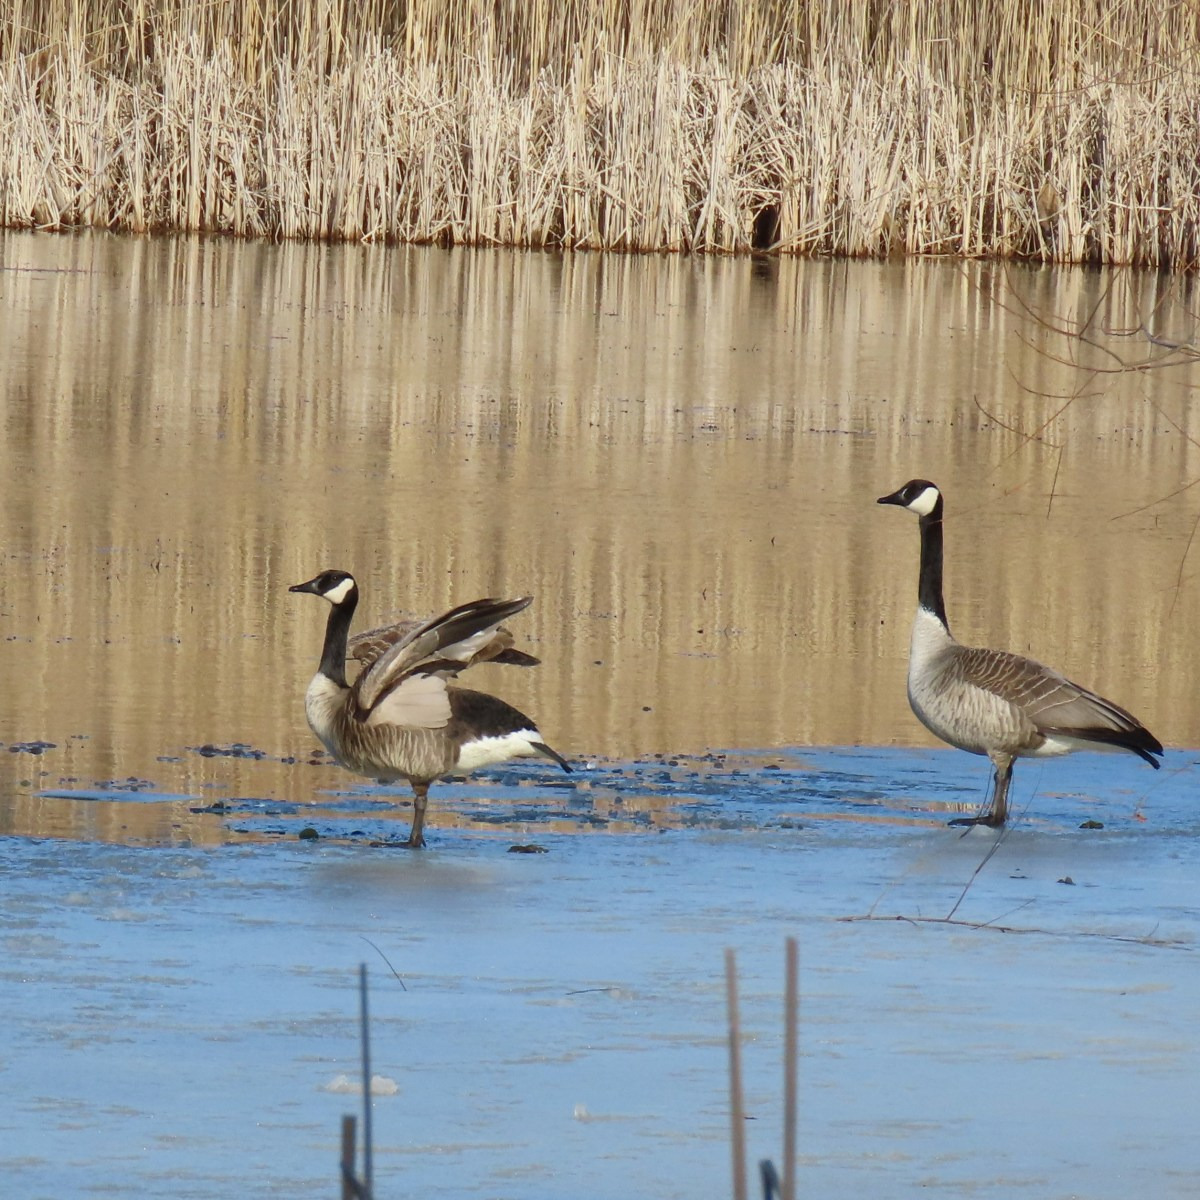 Two Canada Geese stand at the edge of thin ice, one is flapping its wings